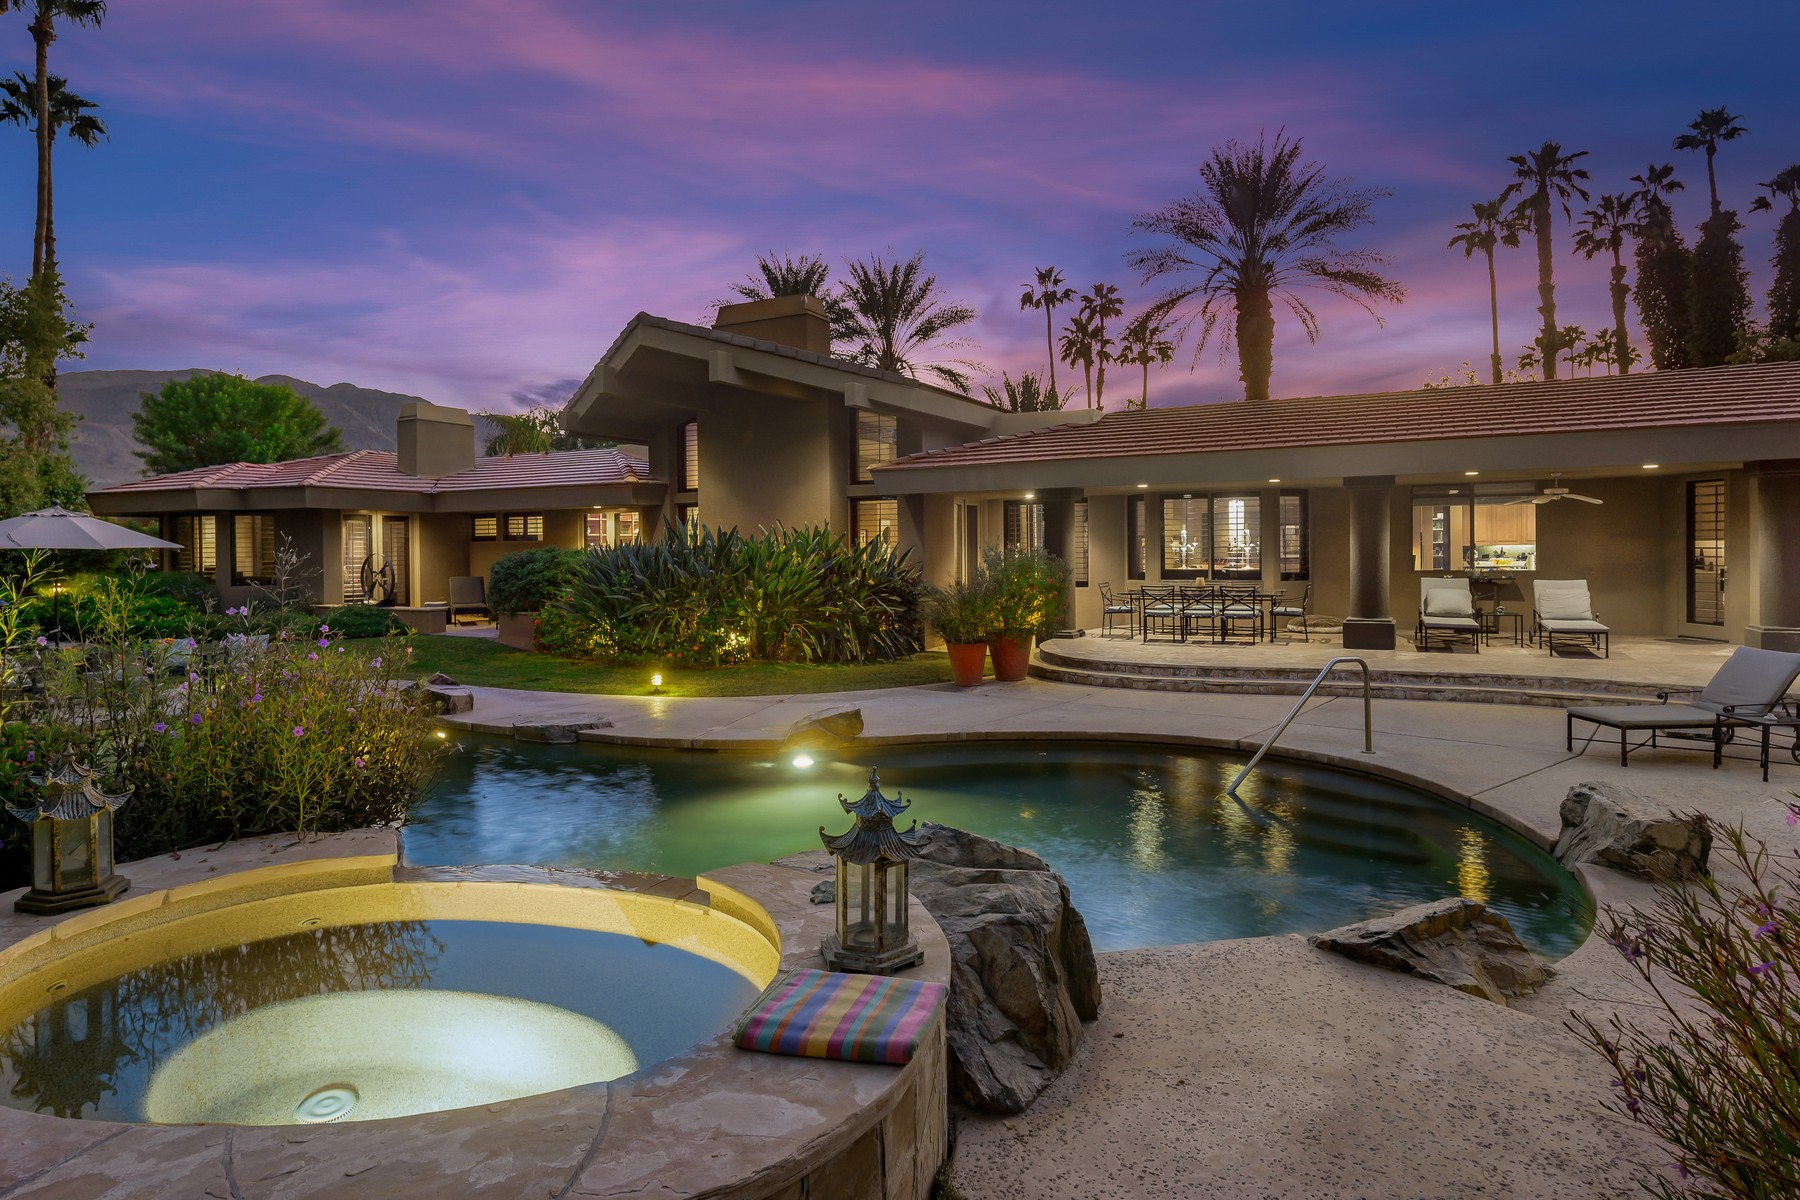 Single Family Homes for Sale at 40680 Morningstar Road Rancho Mirage, California 92270 United States